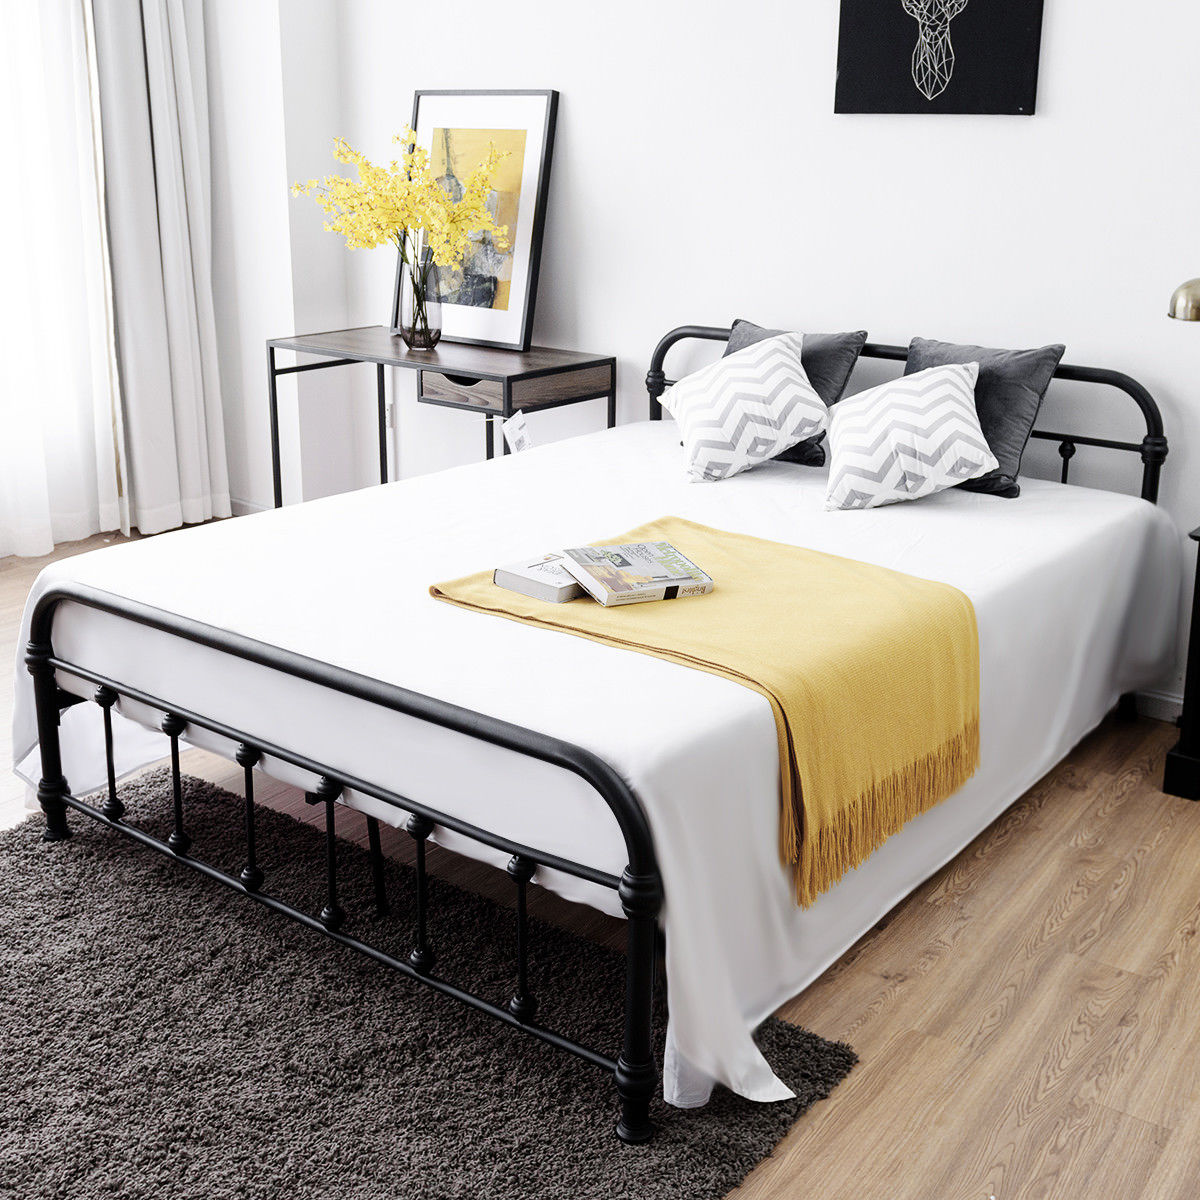 Costway Queen Size Metal Steel Bed Frame W/ Stable Metal Slats